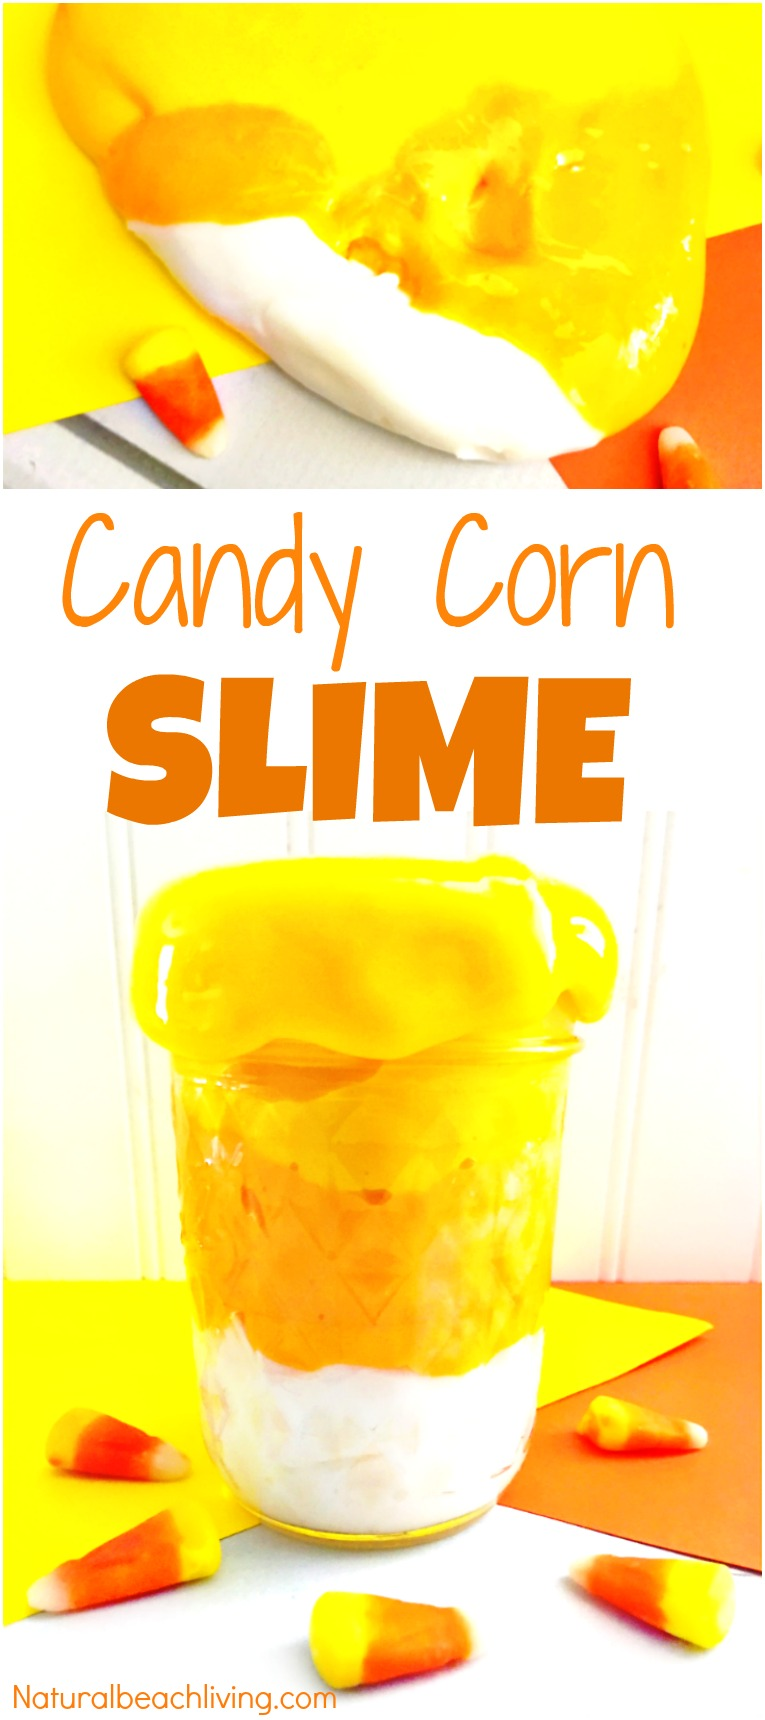 25+ Halloween Slime Ideas Kids Will Love - Natural Beach Living